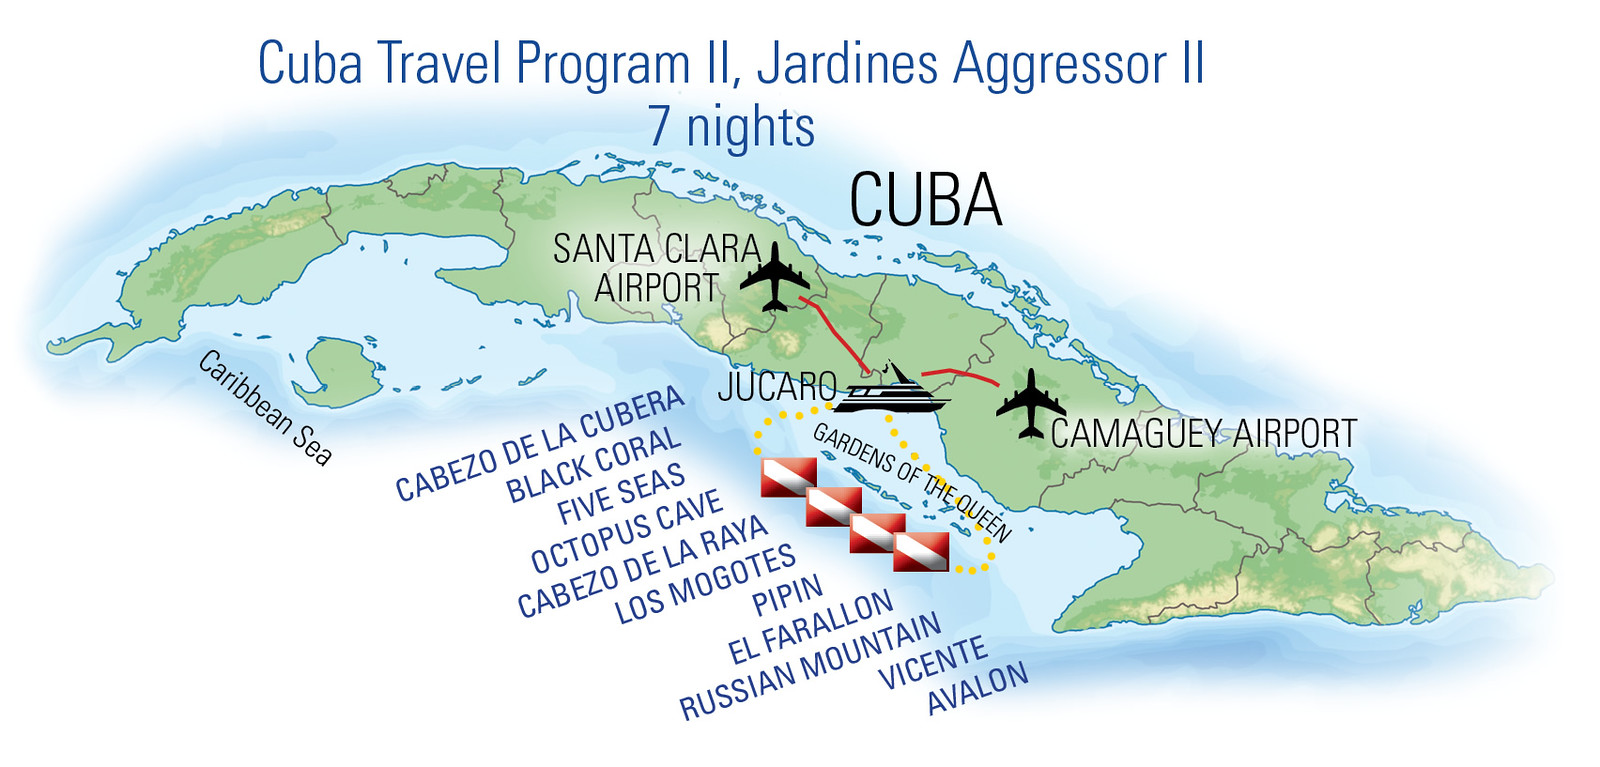 Map of route_Jardines Aggressor II